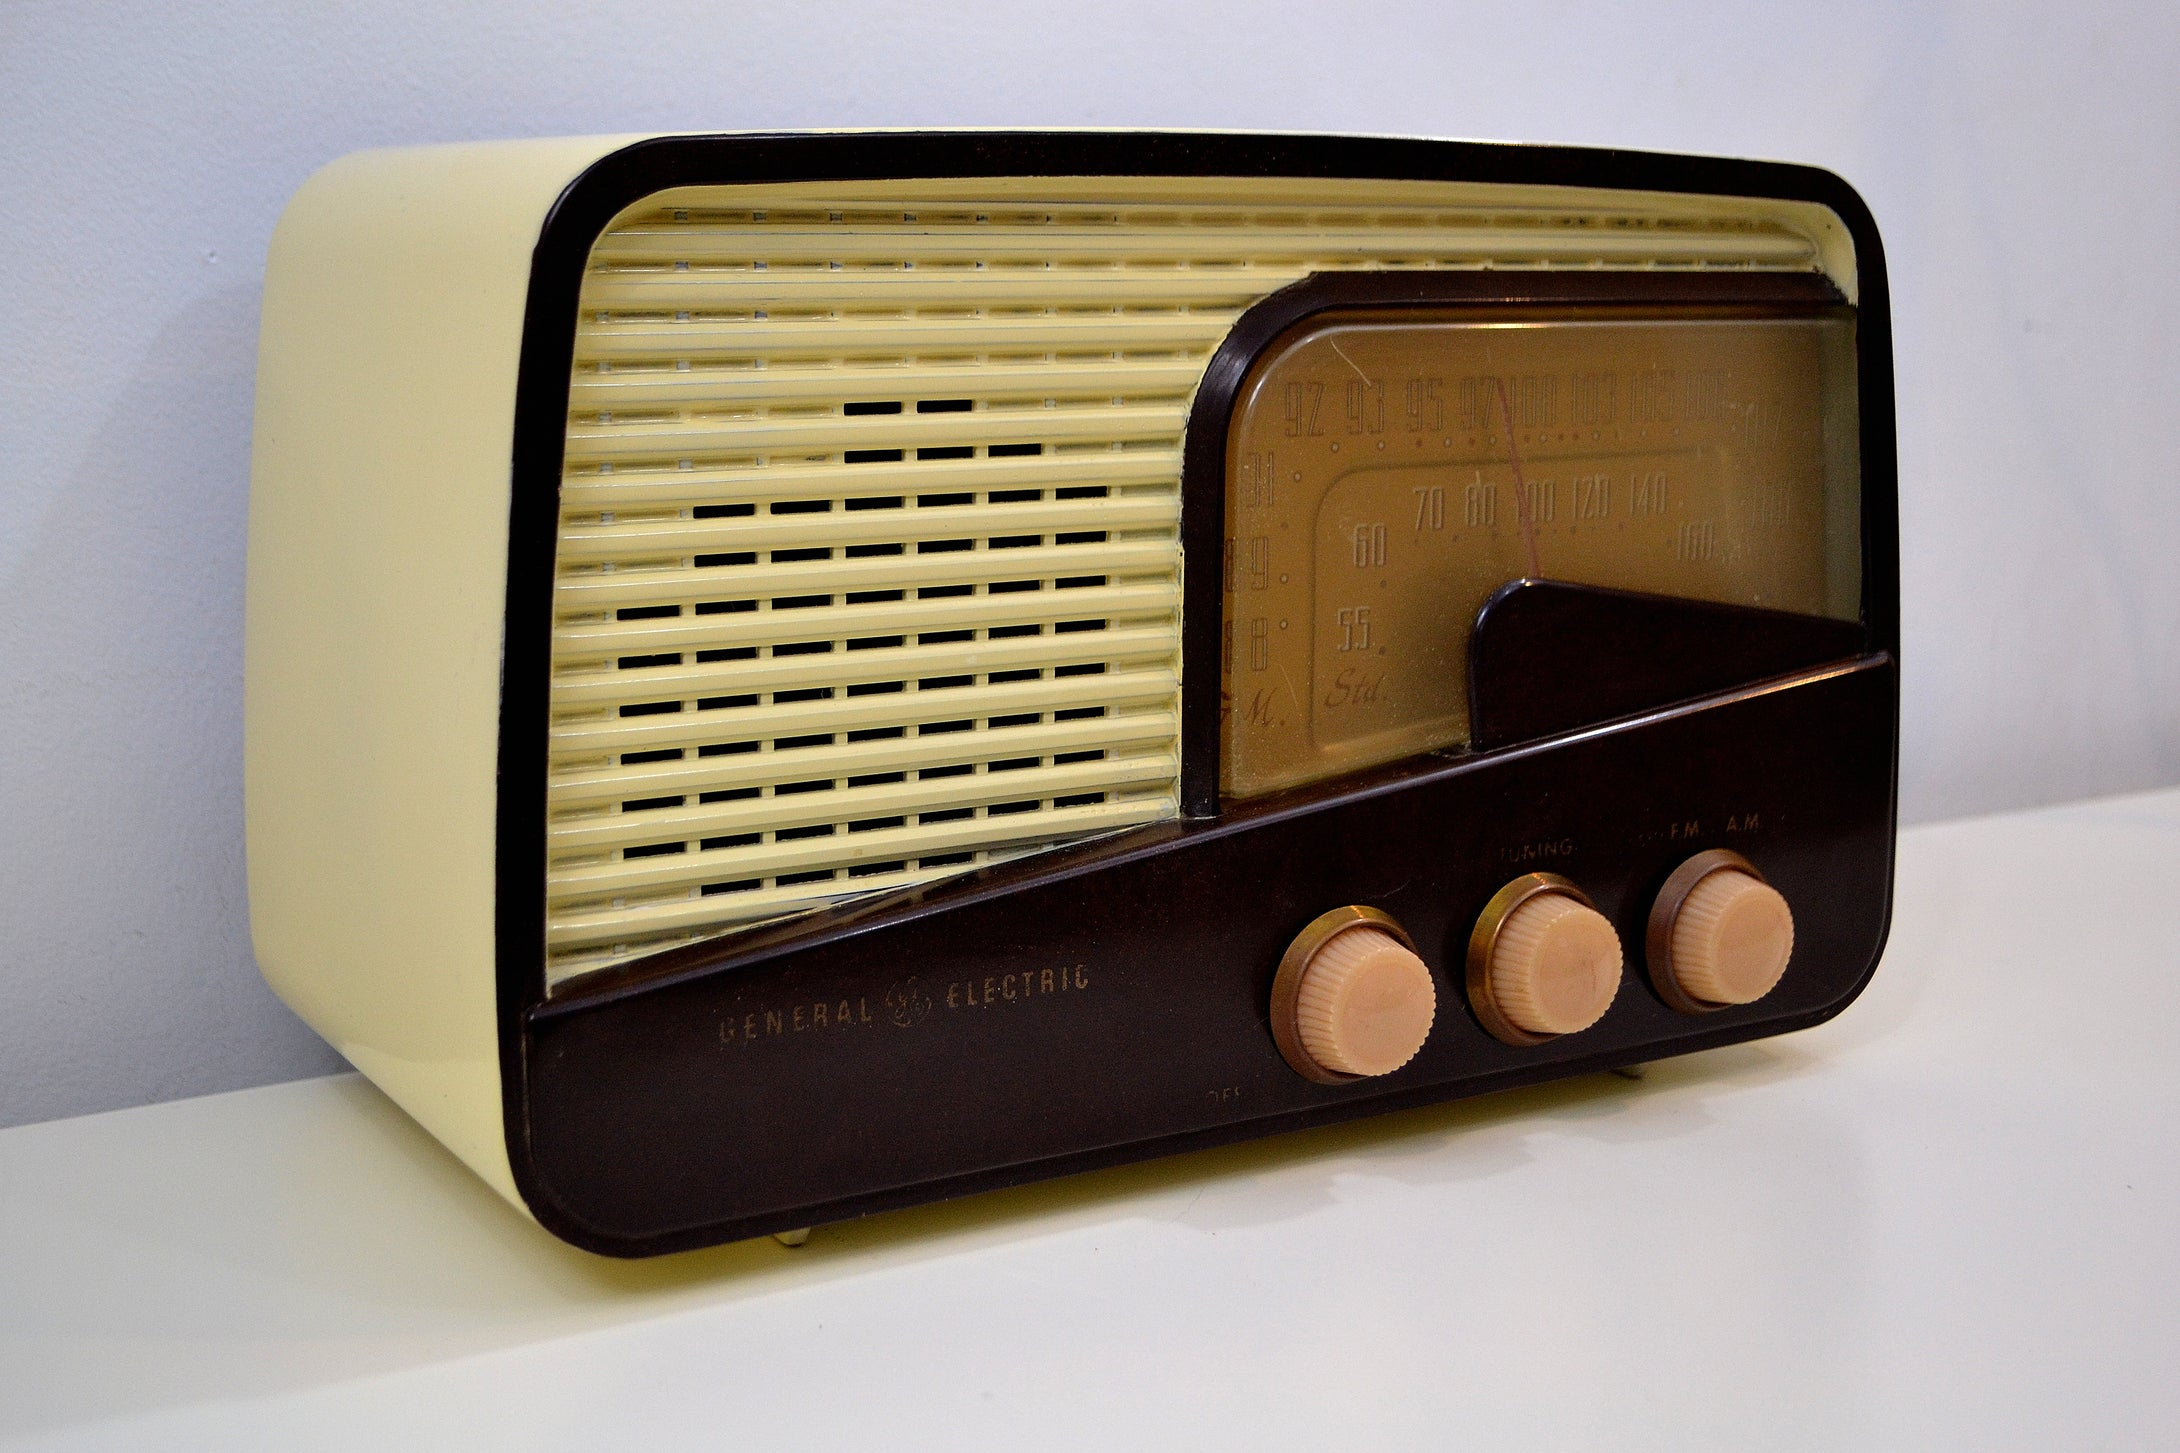 SOLD! - Jan. 22, 2020 - Cabana Ivory 1951 General Electric Model 218 AM FM Radio Works and Looks Great! - [product_type} - General Electric - Retro Radio Farm